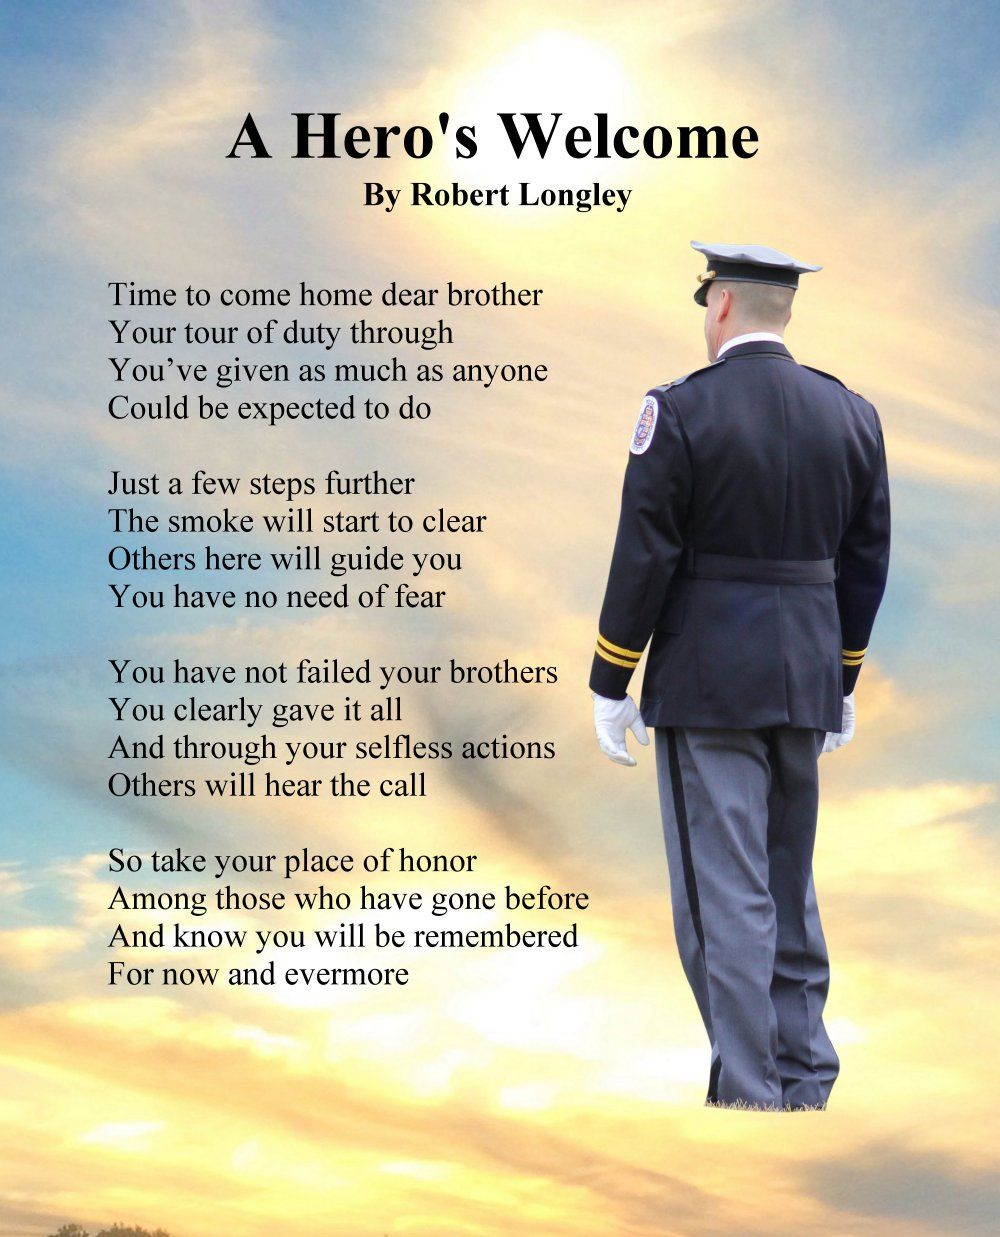 A Hero S Welcome Police 2 By Robert Longley In 2021 Police Memorial Soldier Quotes Military Quotes